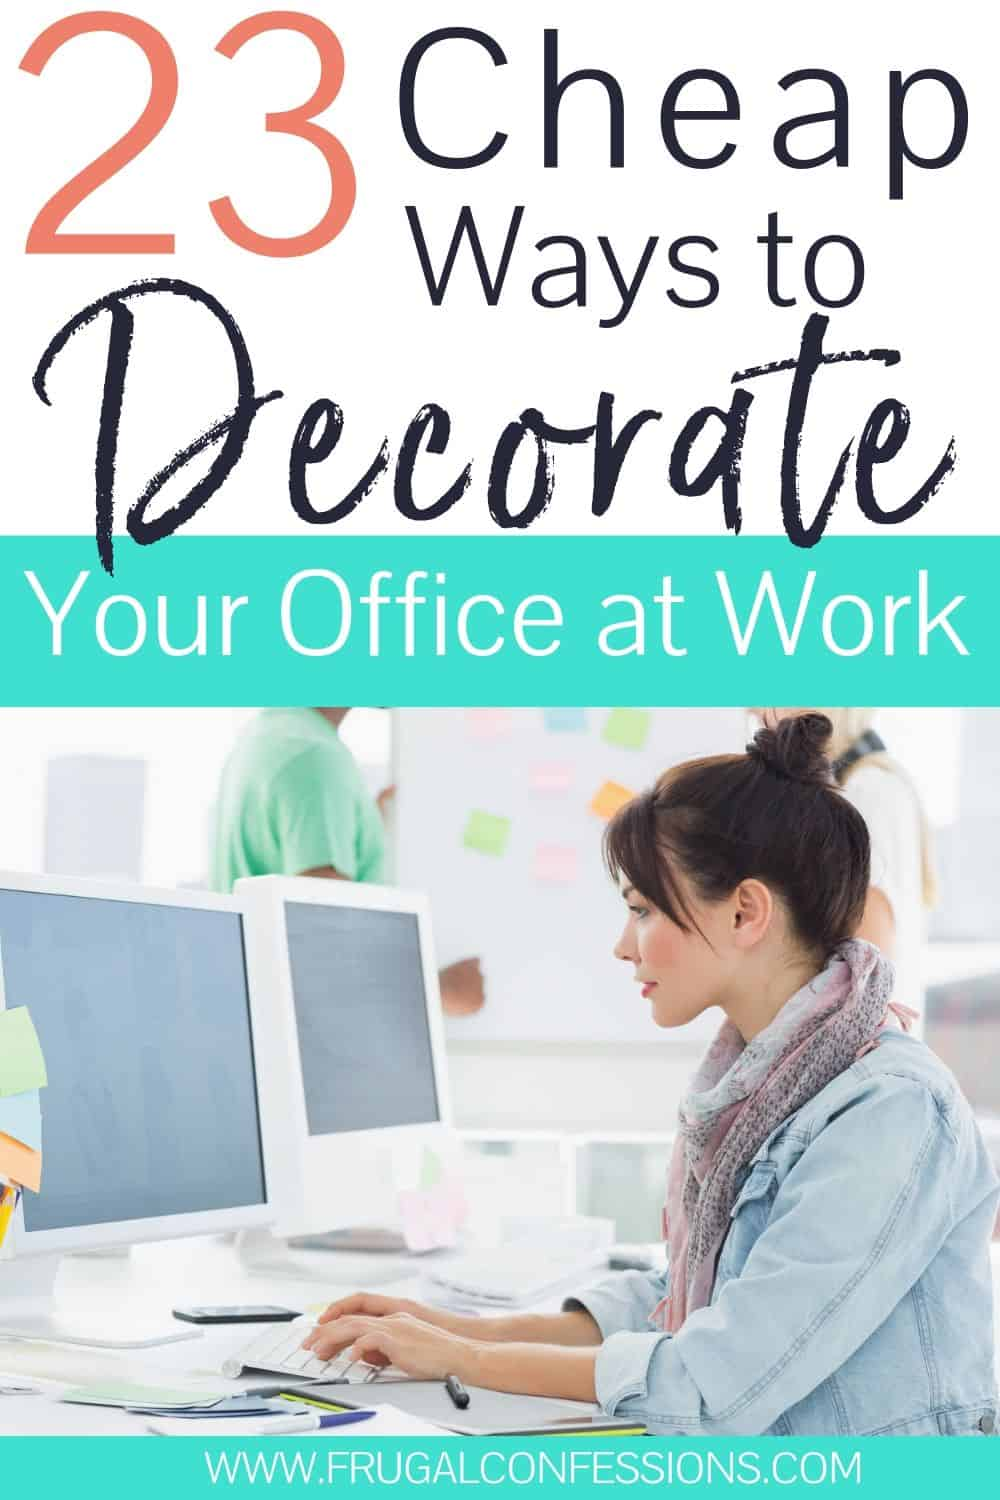 """young woman at office working, text overlay """"23 cheap ways to decorate your office at work"""""""